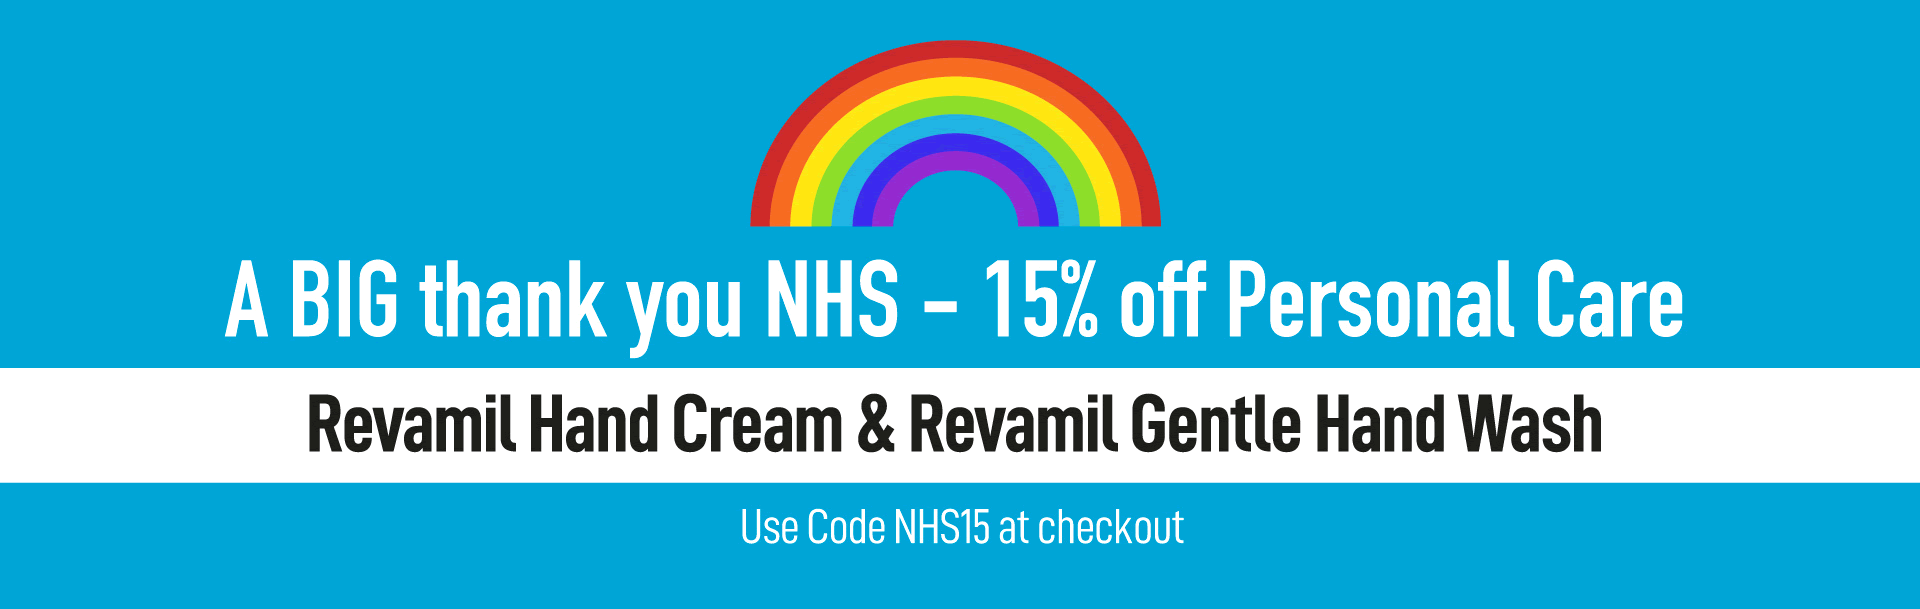 A BIG thank you NHS - 15% off Personal Care